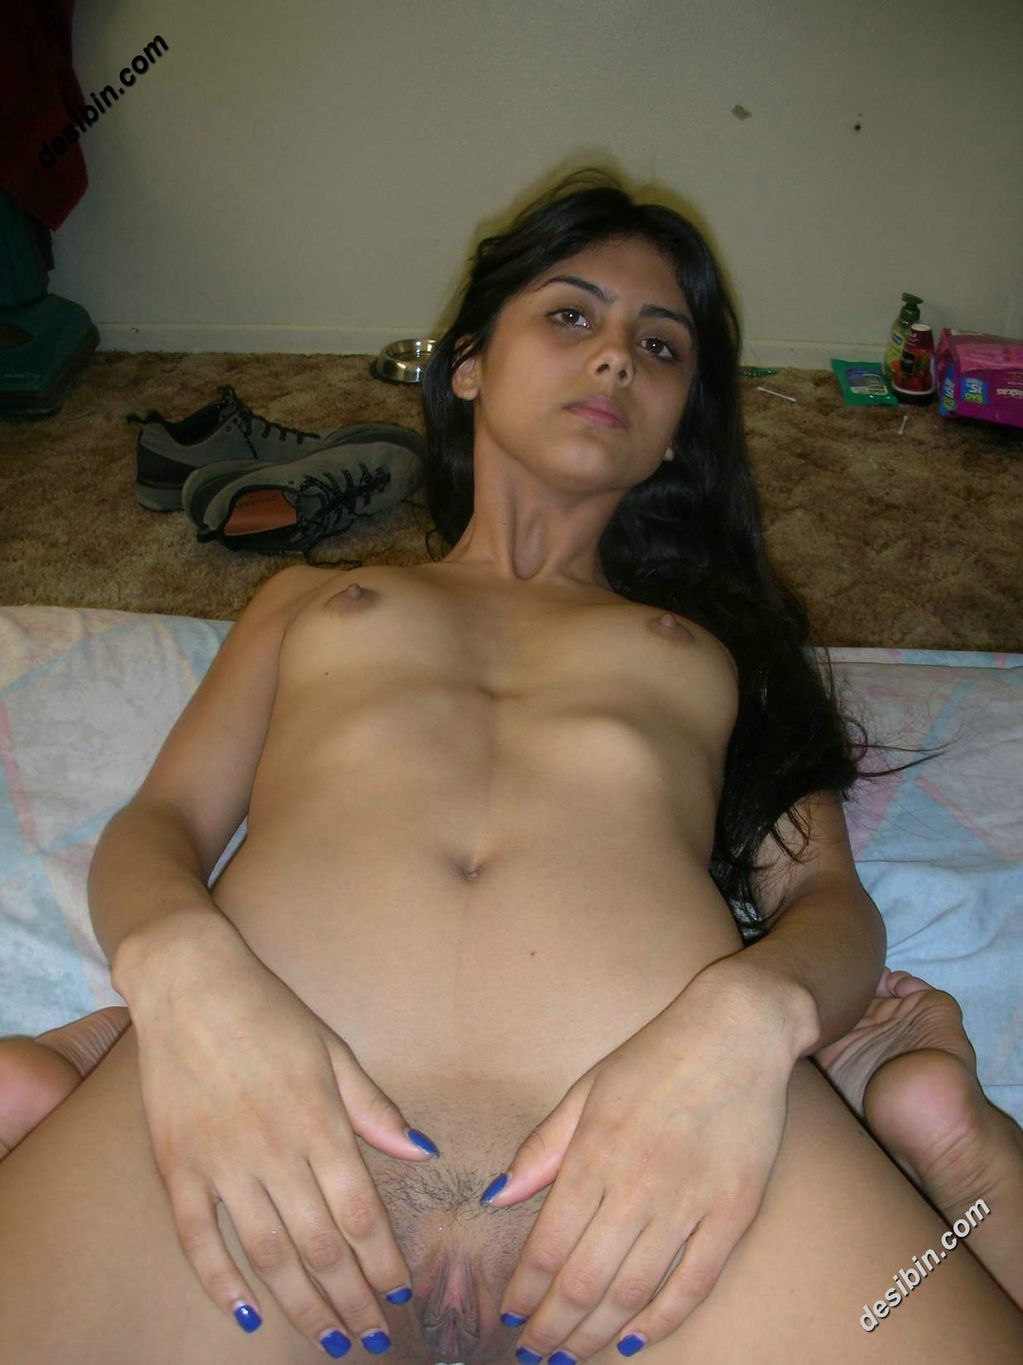 The desi nude Thanks for